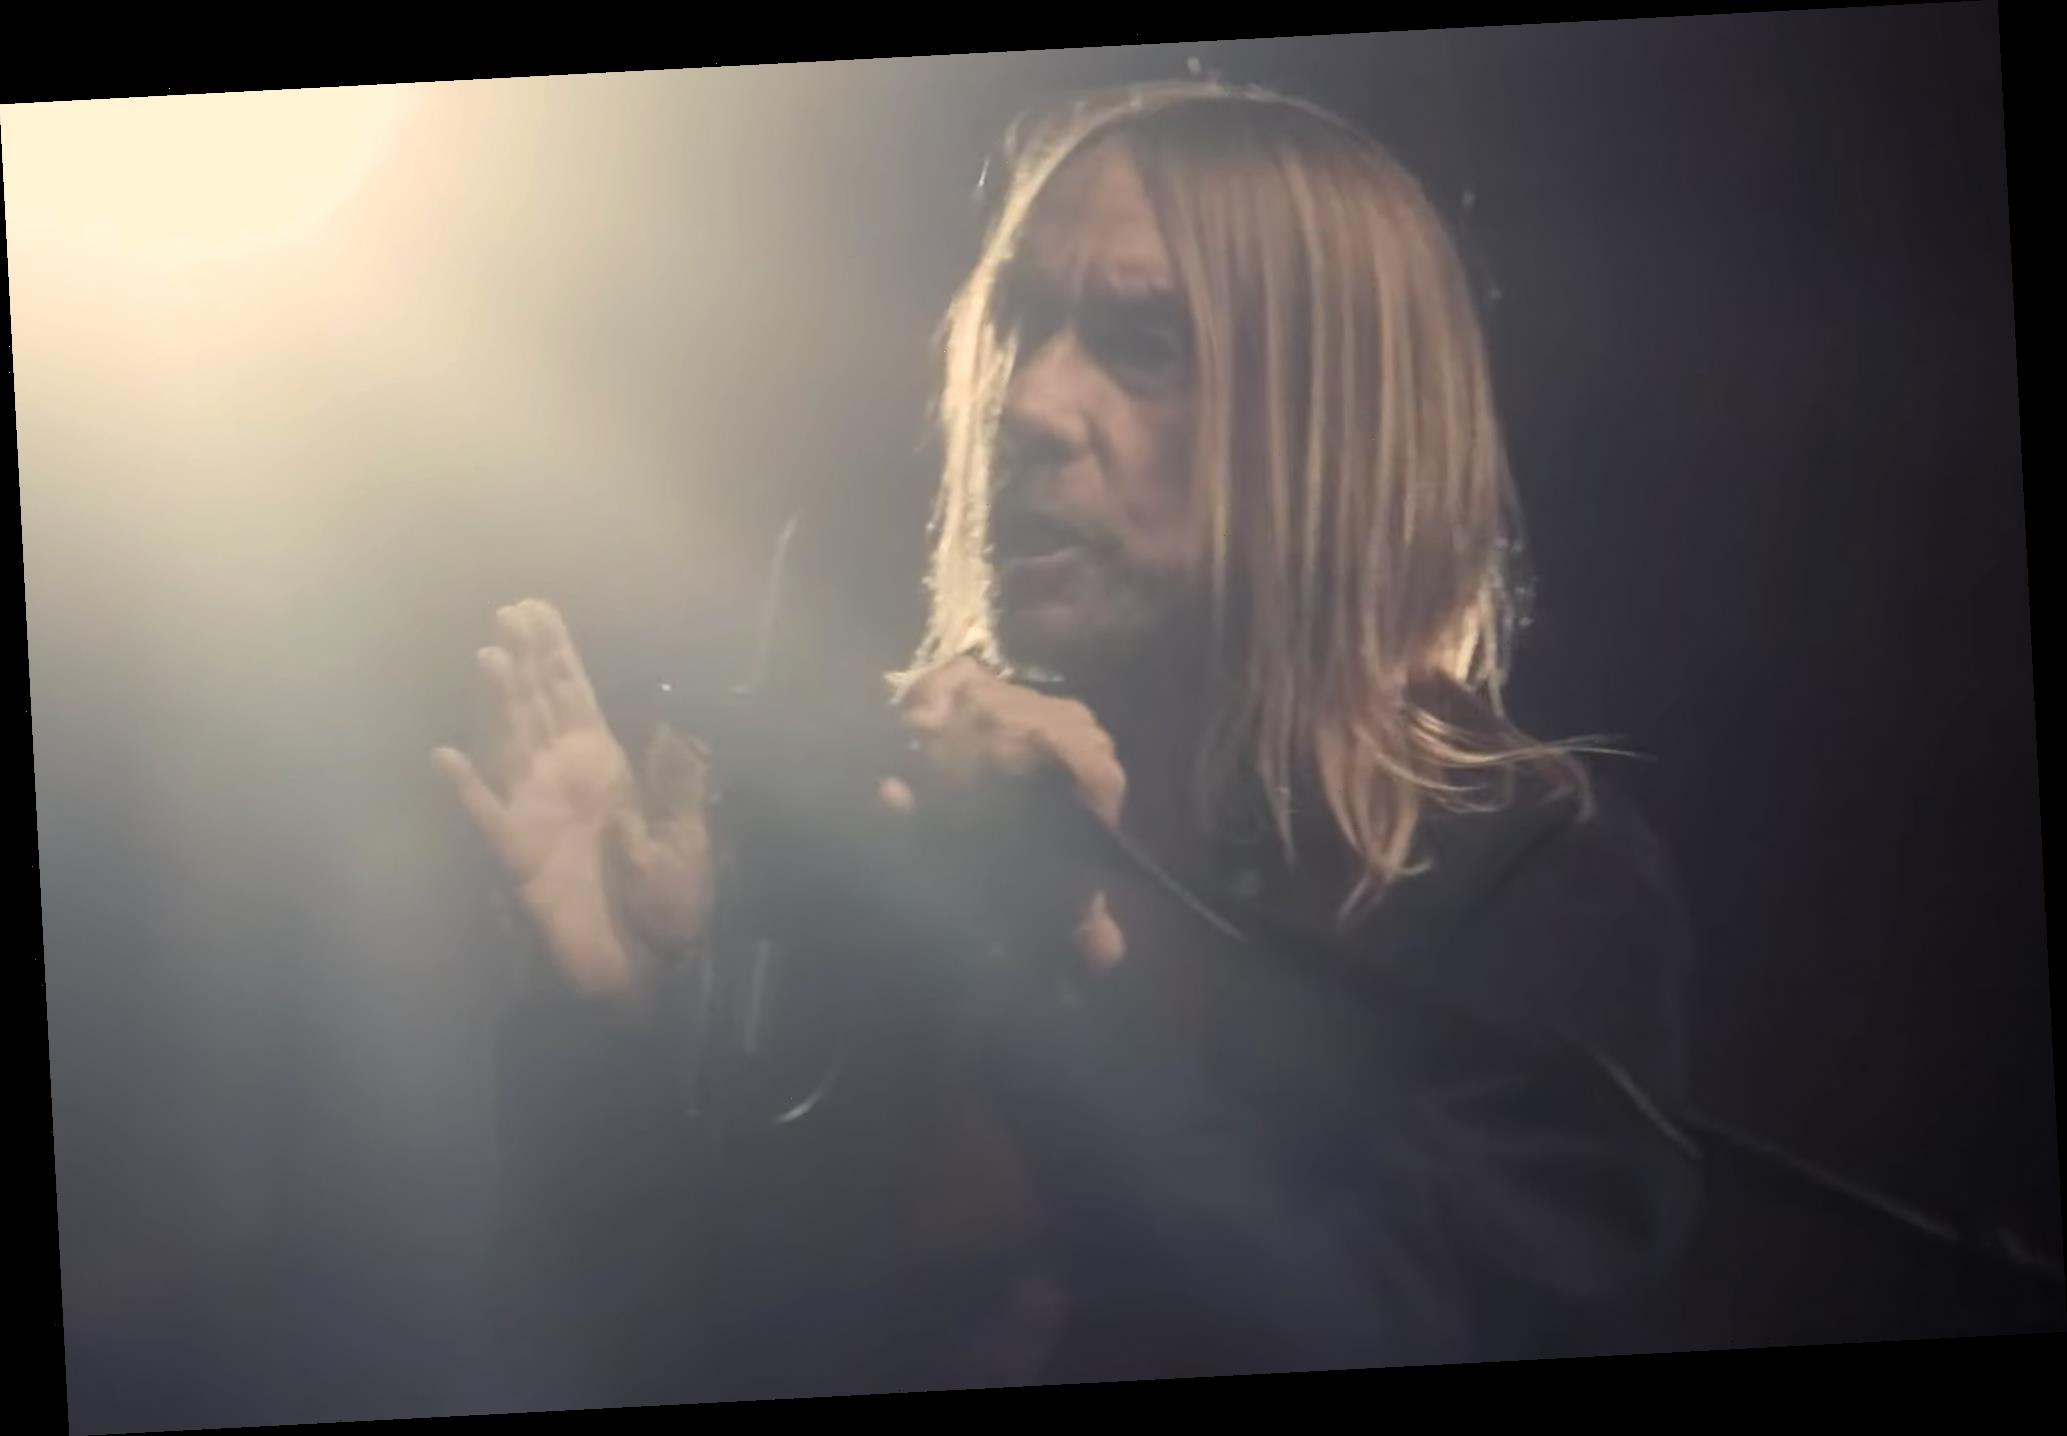 See Iggy Pop Croon in New Video 'Loves Missing'